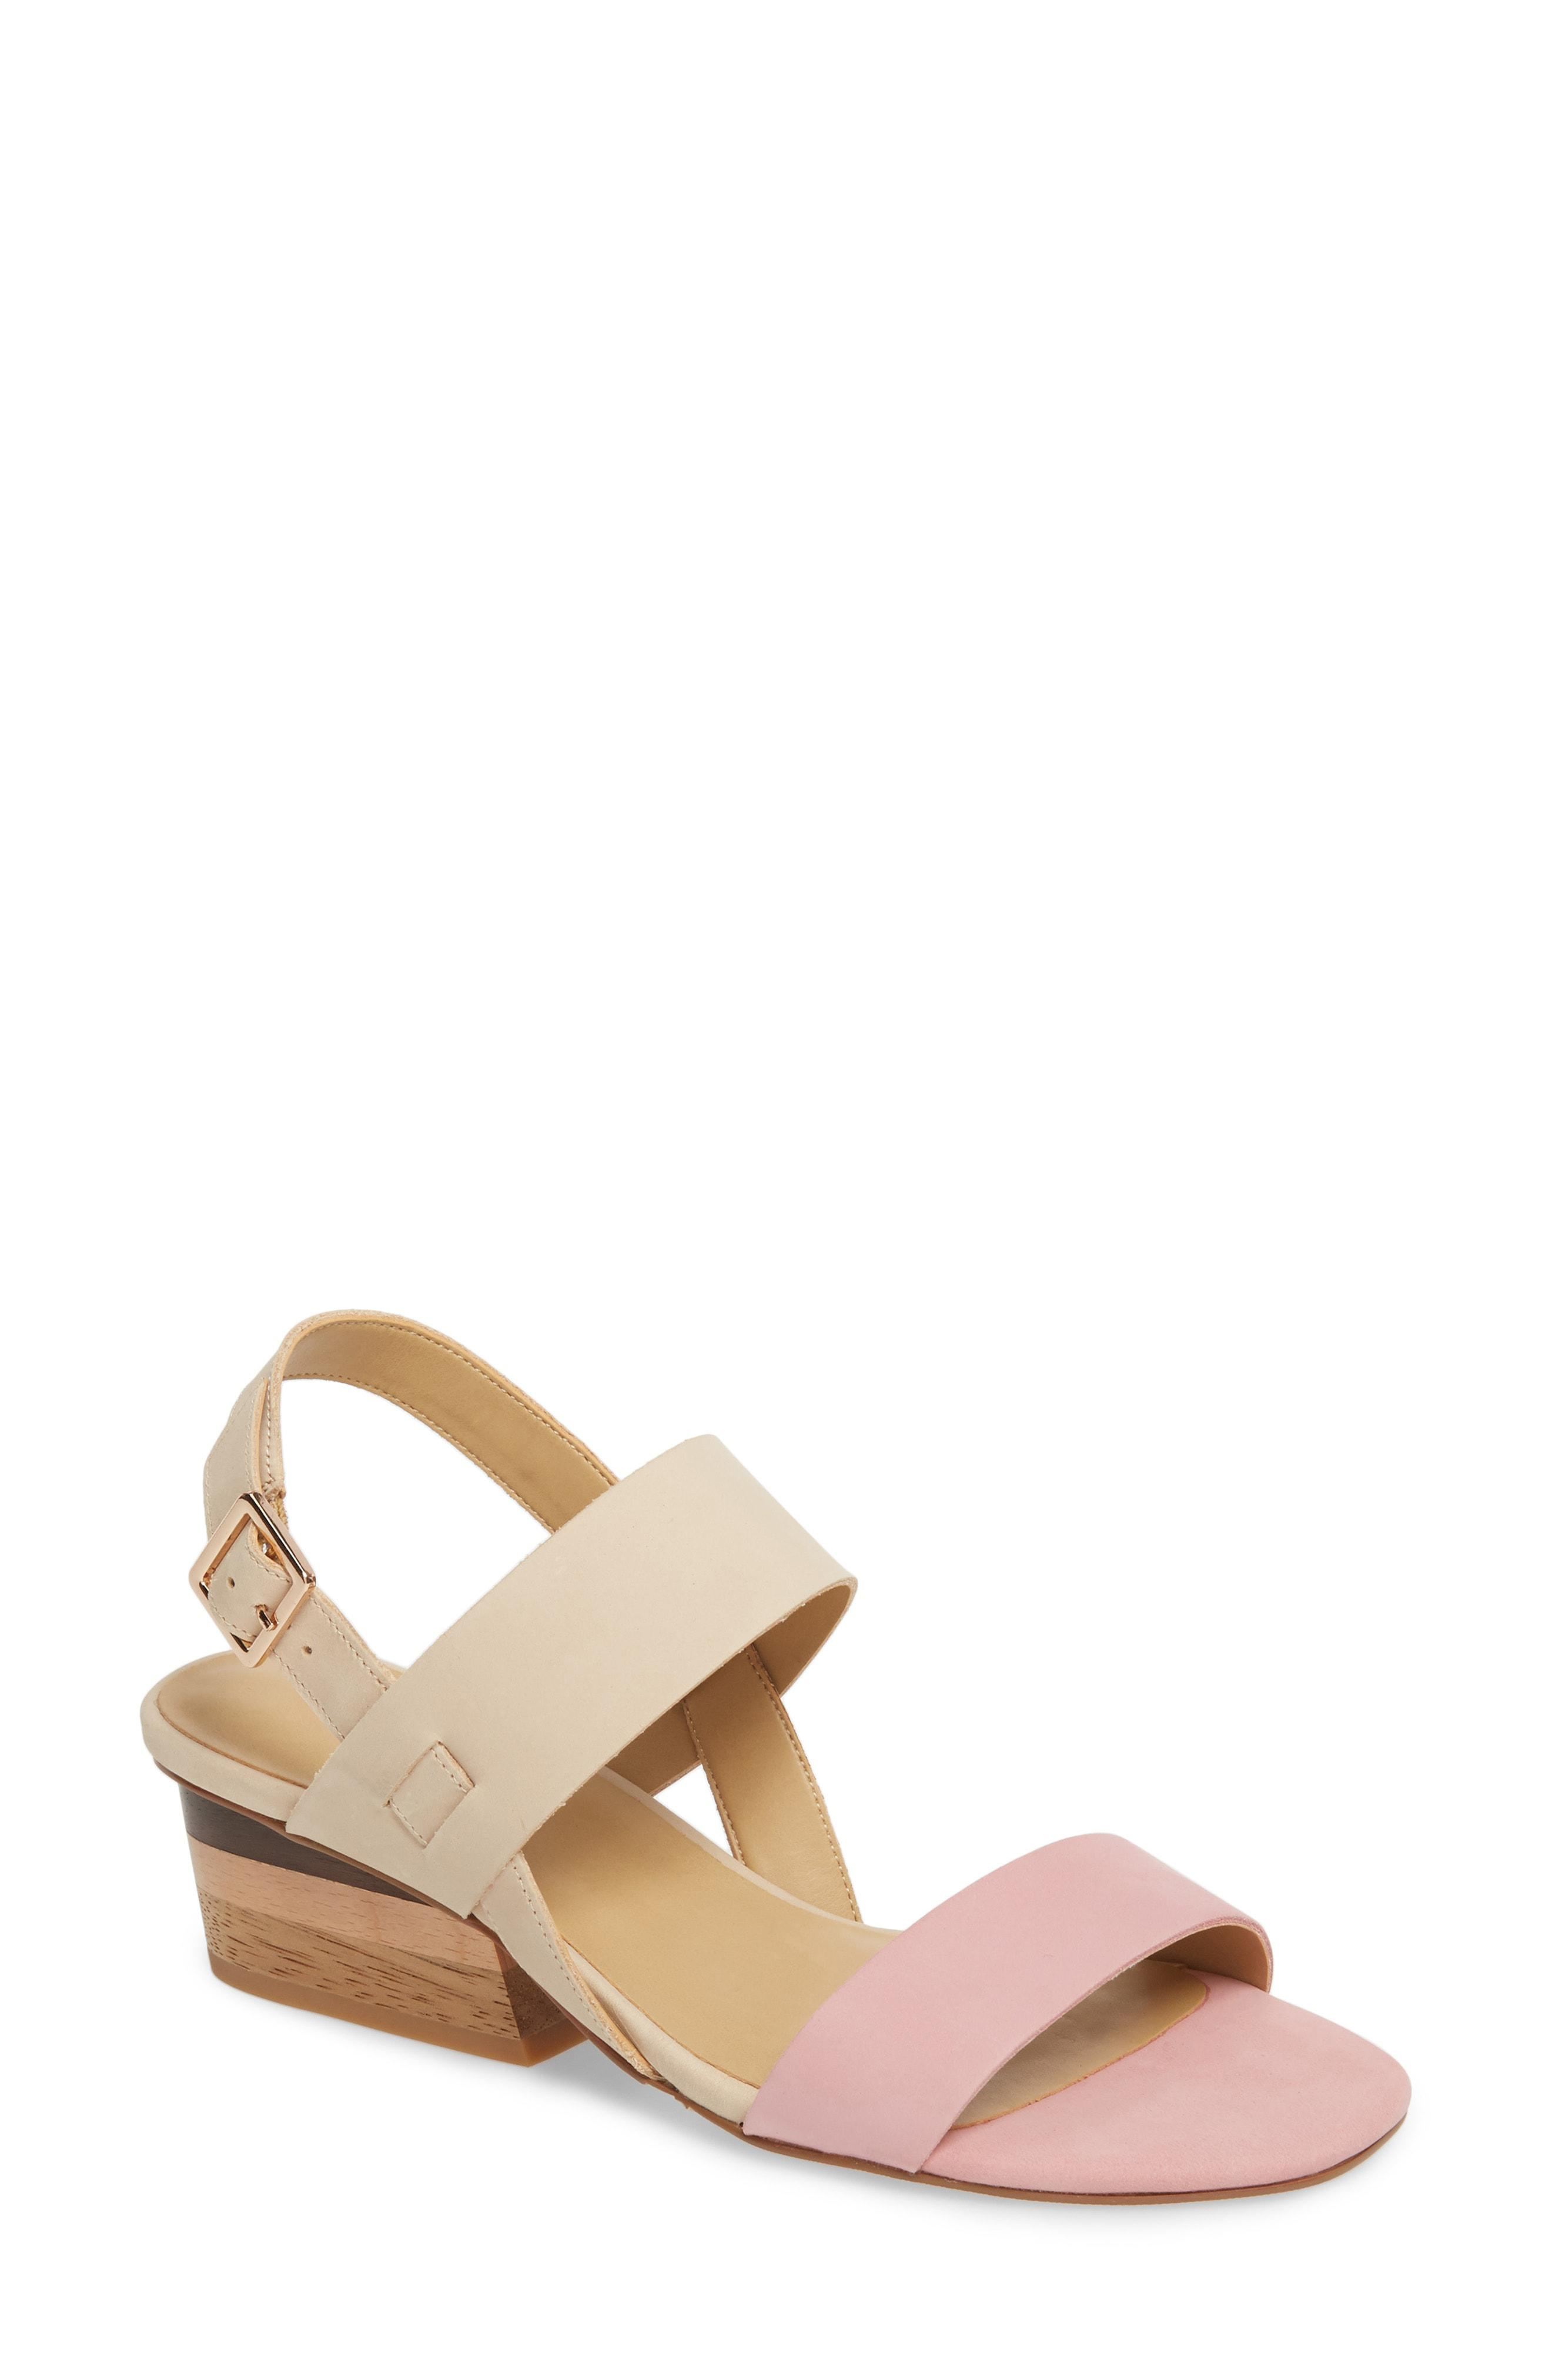 1296d5e913a2 Lyst - Vaneli Caryna Slingback Sandal in Pink